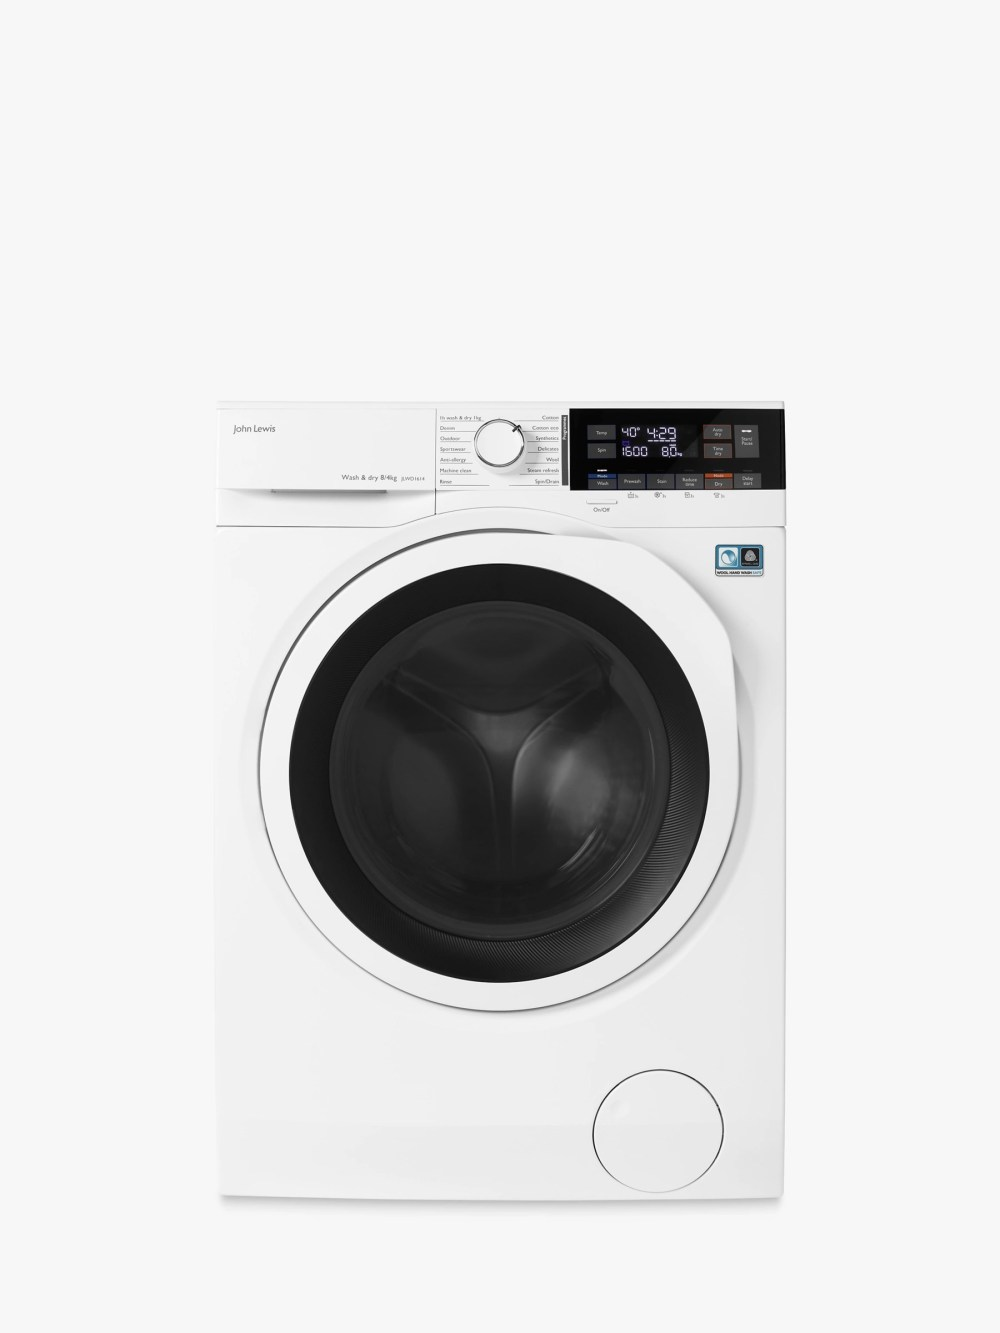 medium resolution of john lewis partners jlwd1614 freestanding washer dryer 8kg wash 4kg dry load a energy rating 1600rpm spin white at john lewis partners